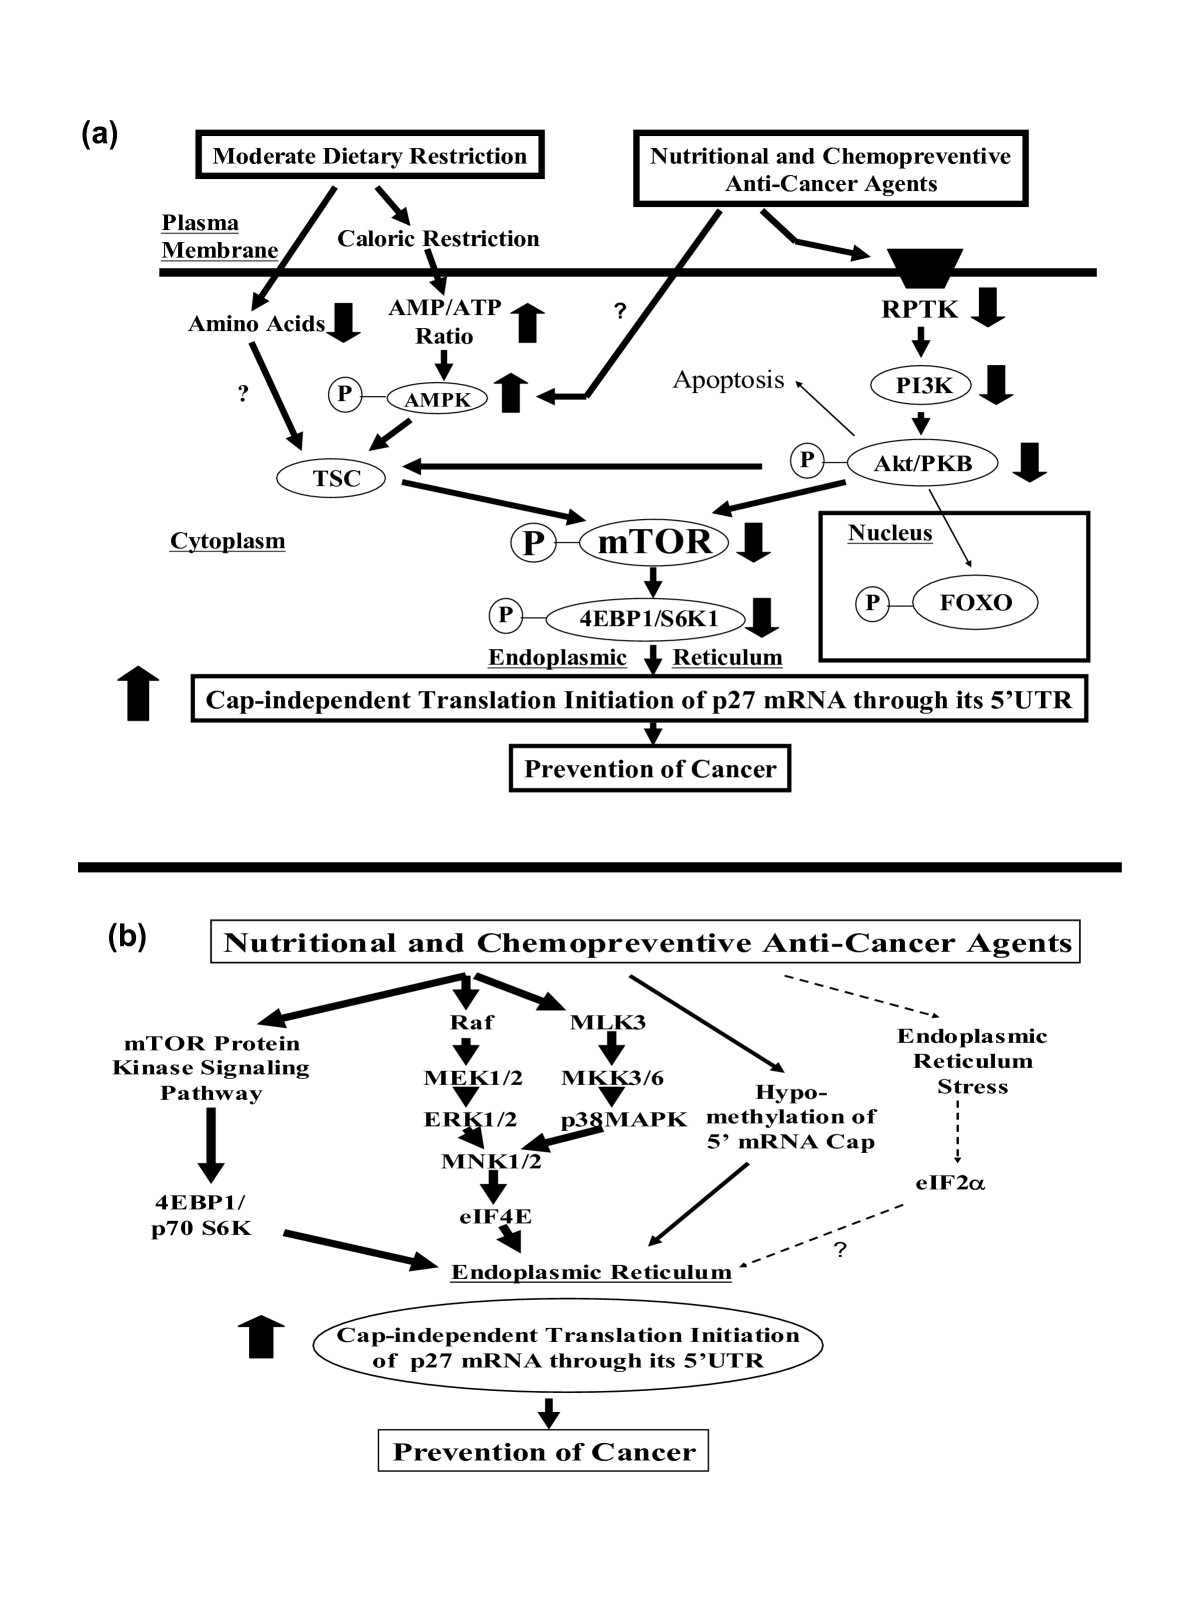 http://static-content.springer.com/image/art%3A10.1186%2F1475-2867-6-20/MediaObjects/12935_2006_Article_156_Fig10_HTML.jpg